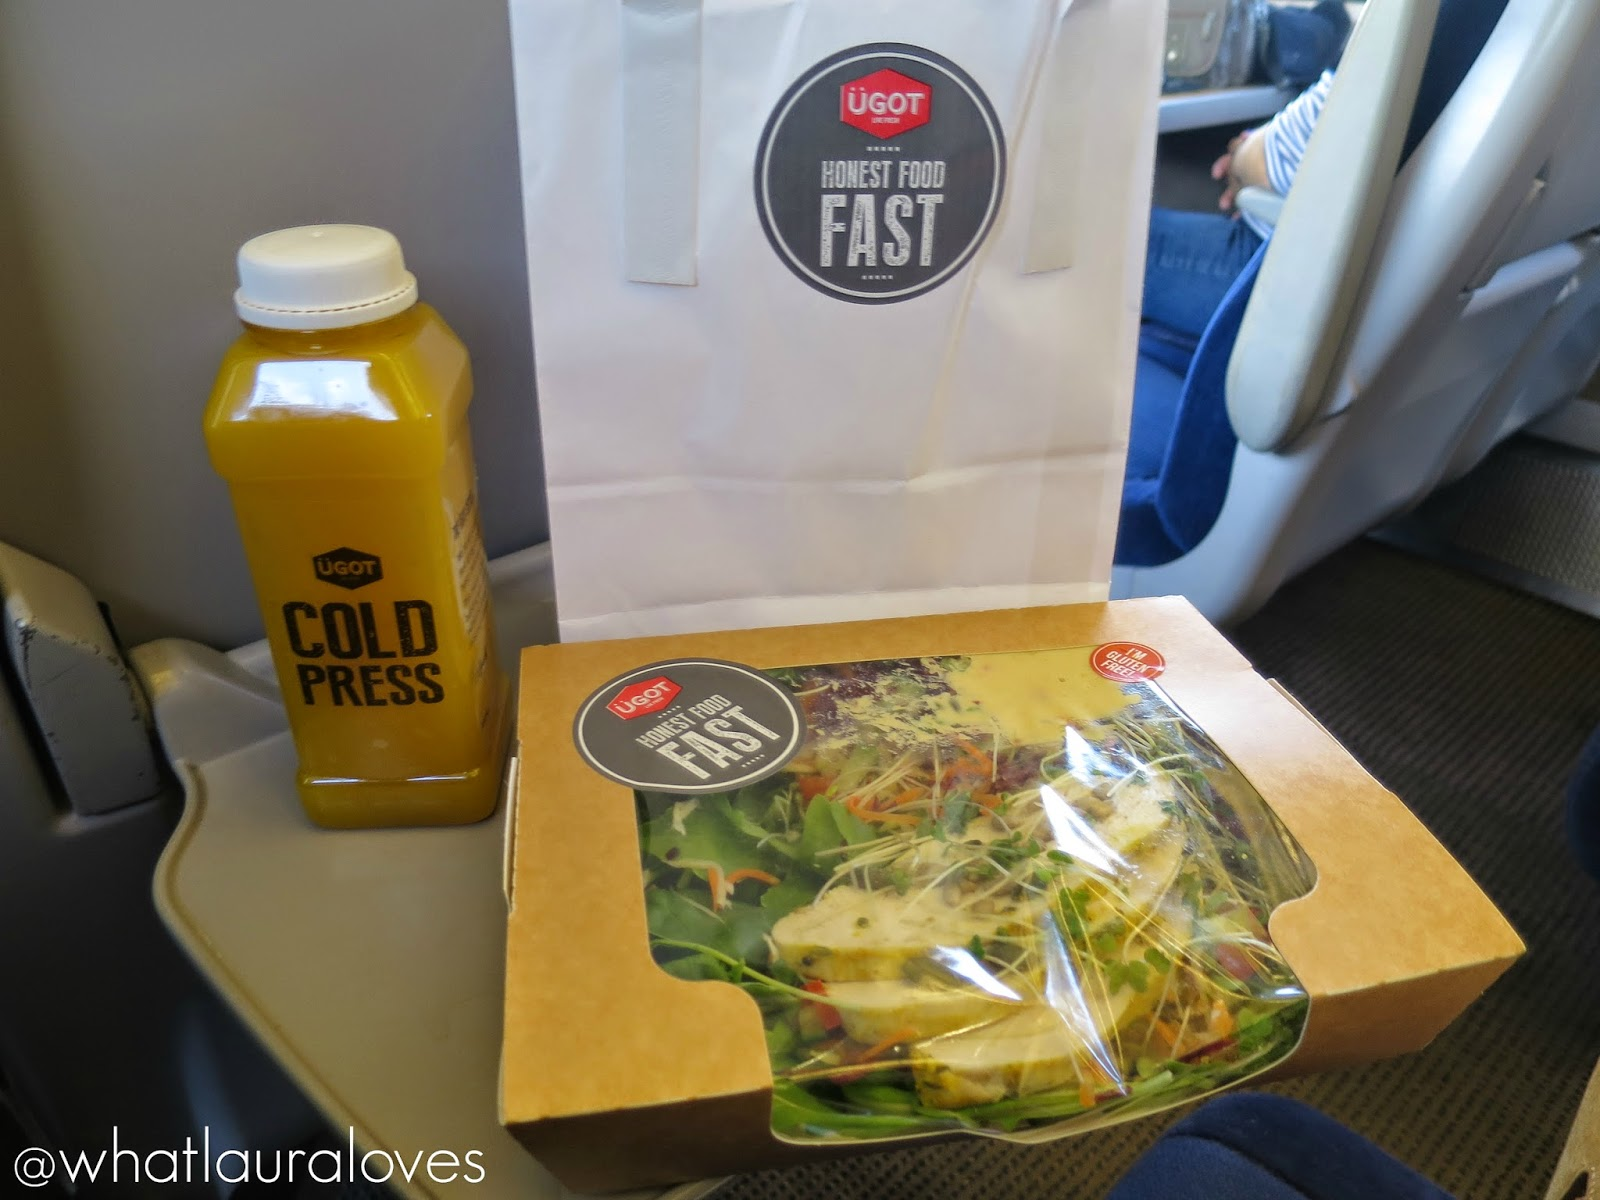 UGOT HONEST FOOD FAST REVIEW HEALTHY NEWCASTLE YORK TRAIN STATION